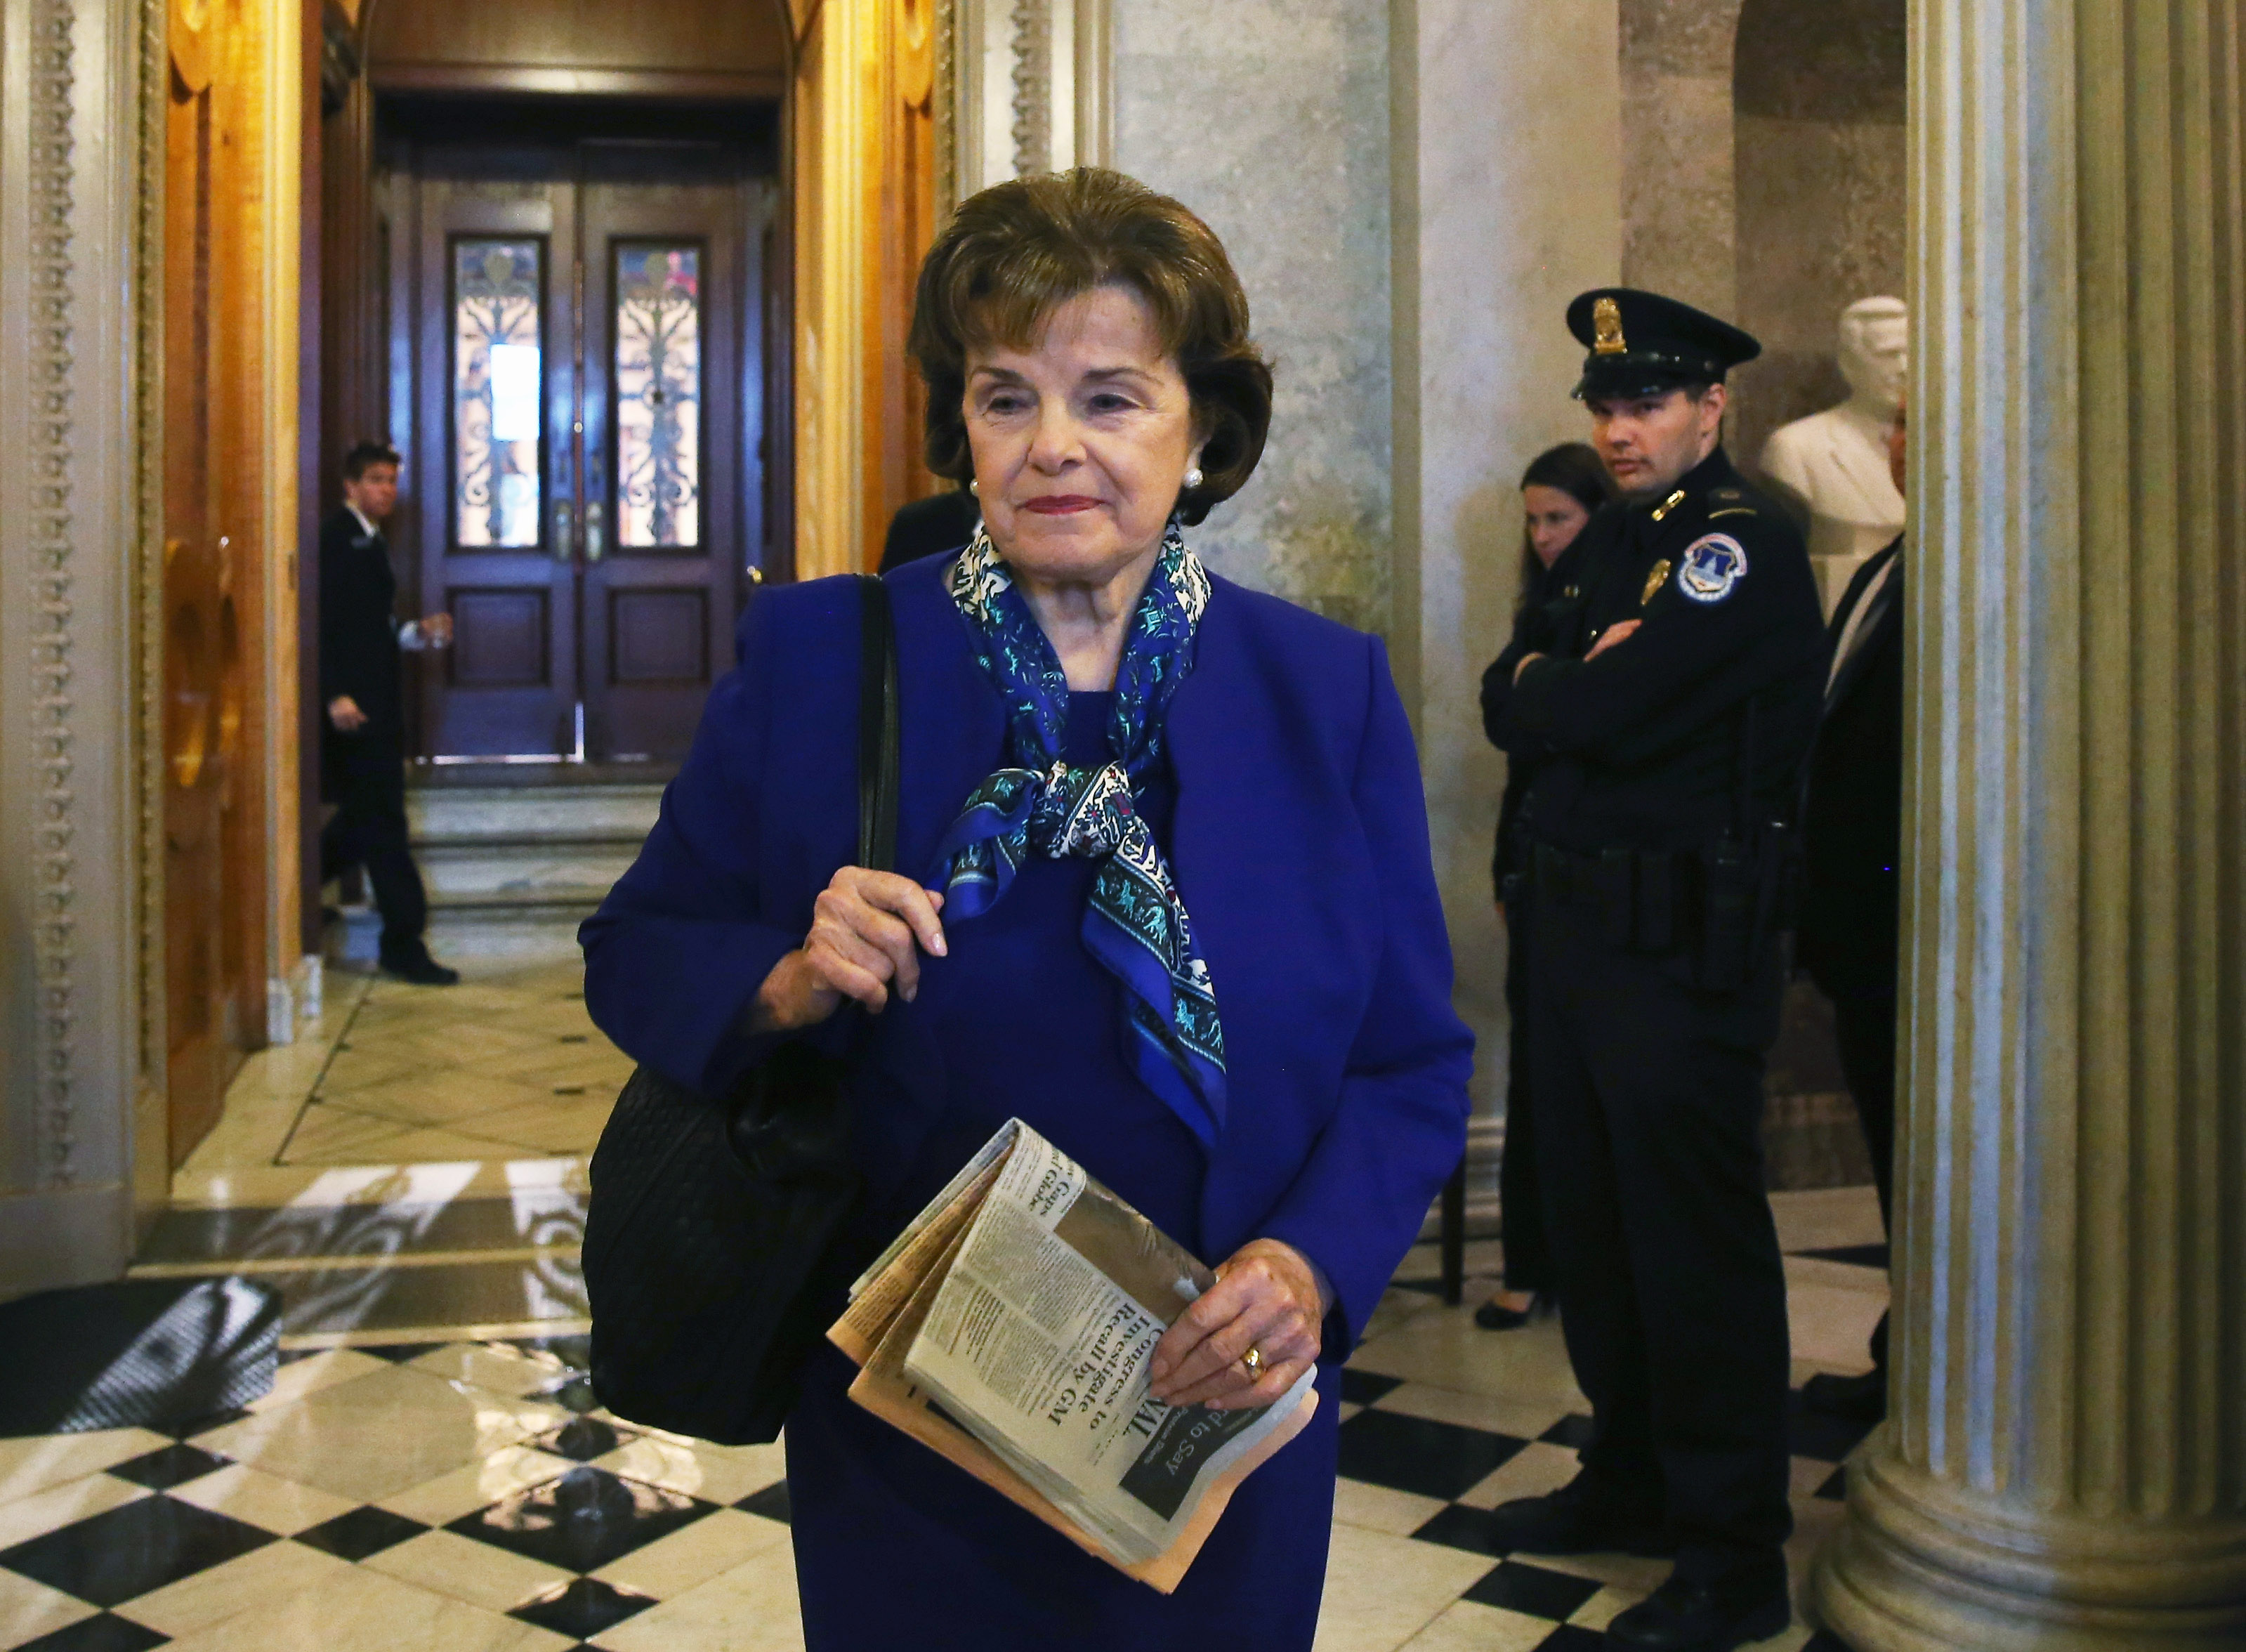 dianne-feinstein-cia-spying-senate.jpg